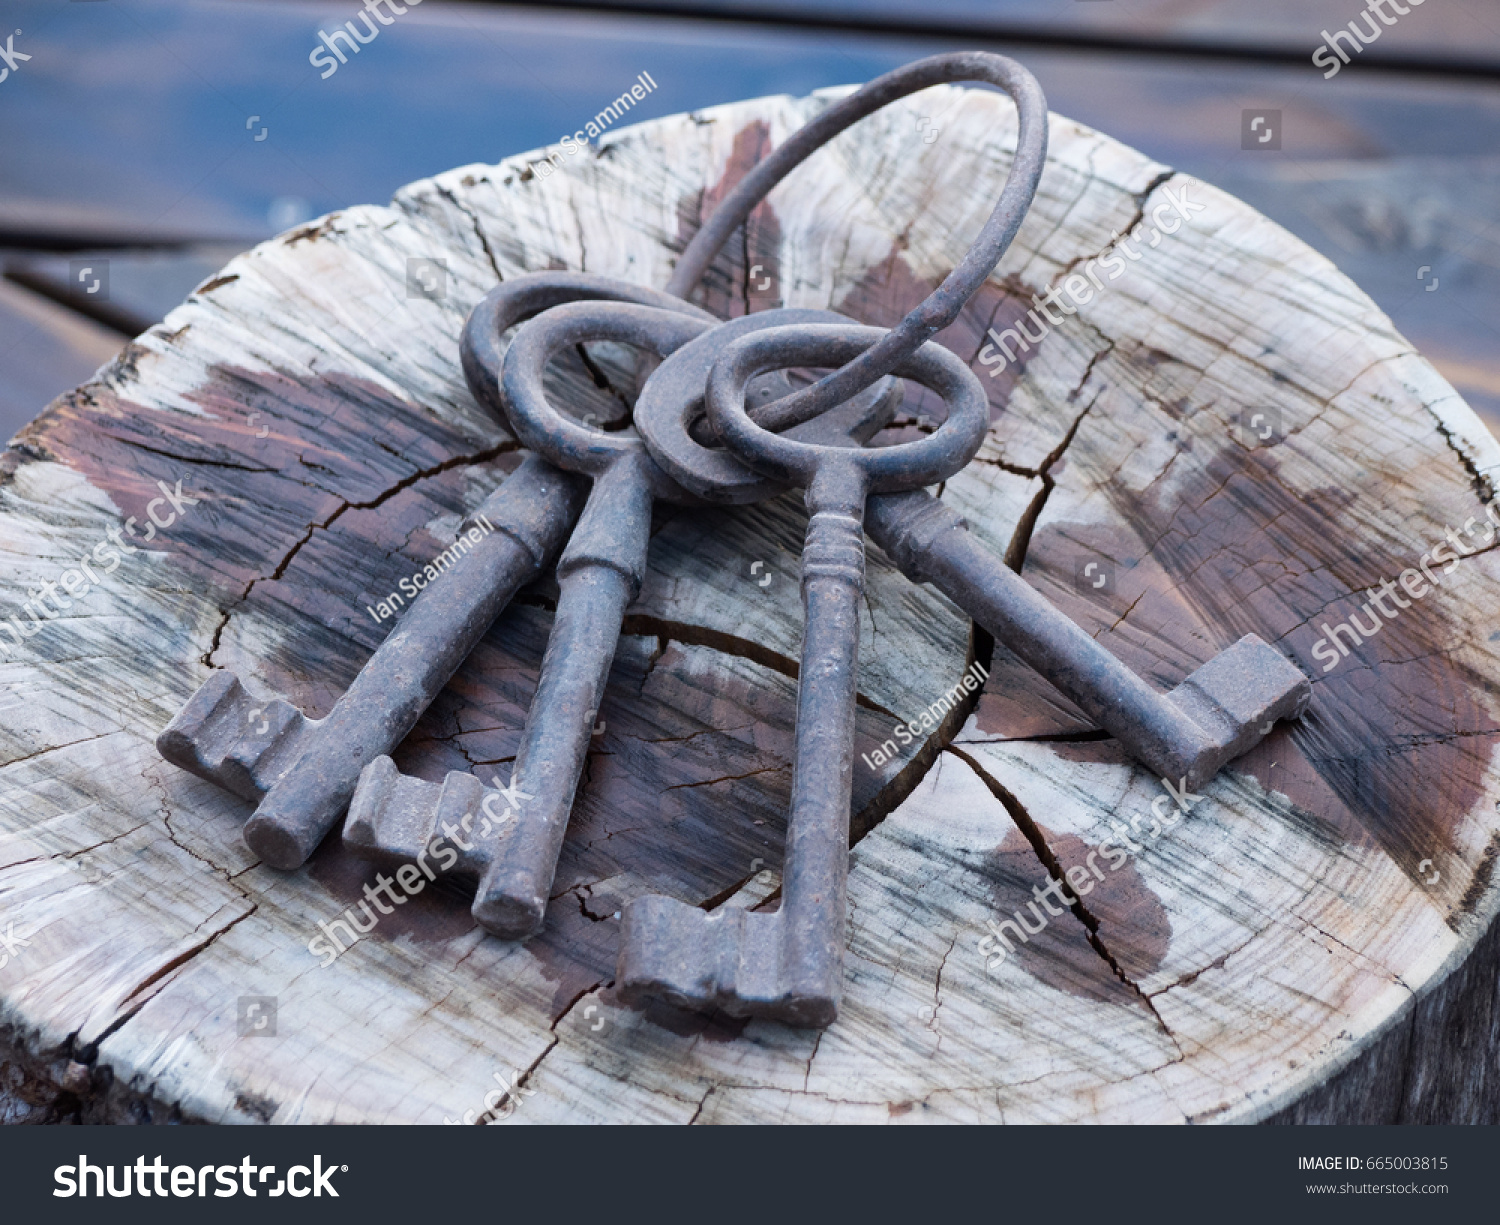 Large antique keys #665003815